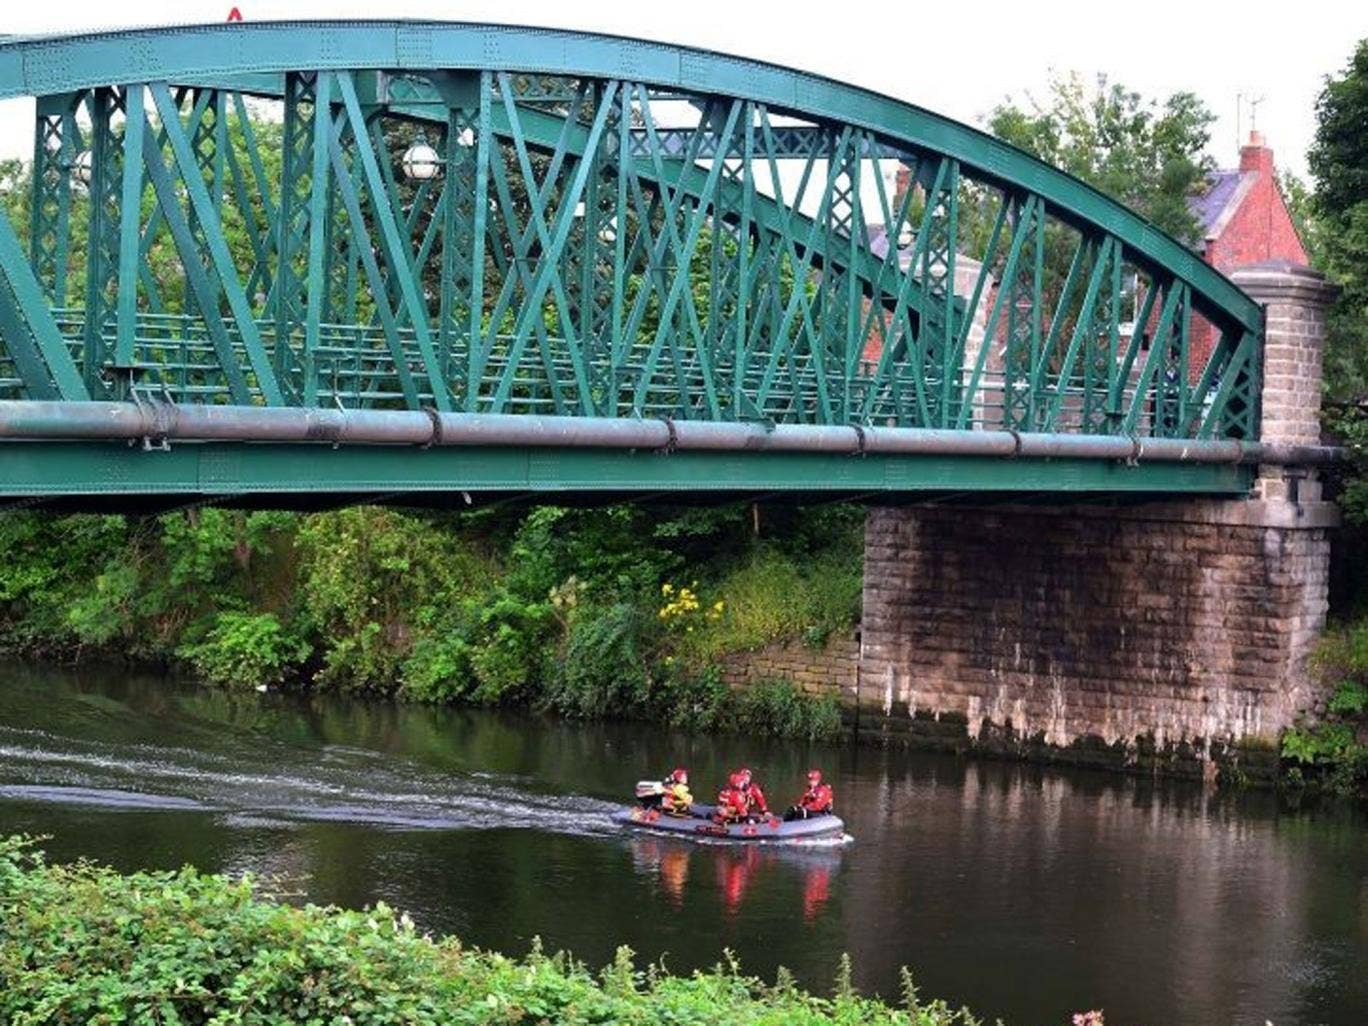 Emergency services search the River Wear for two girls who got into trouble swimming on Tuesday